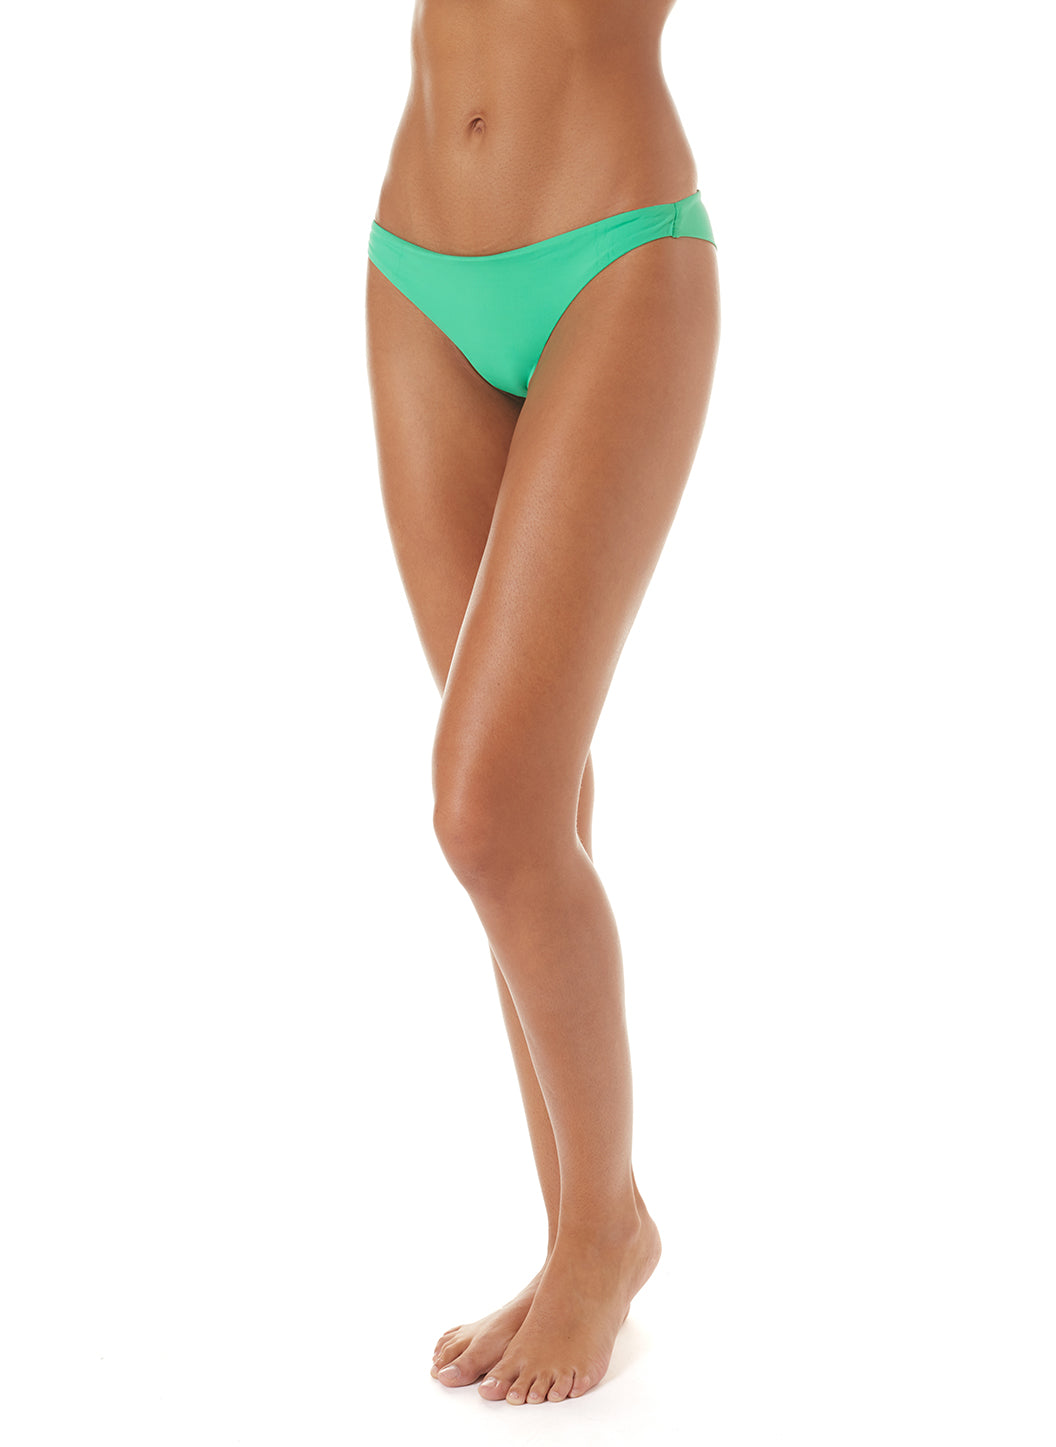 Exclusive Sisi Skimpy Bikini Bottoms Green